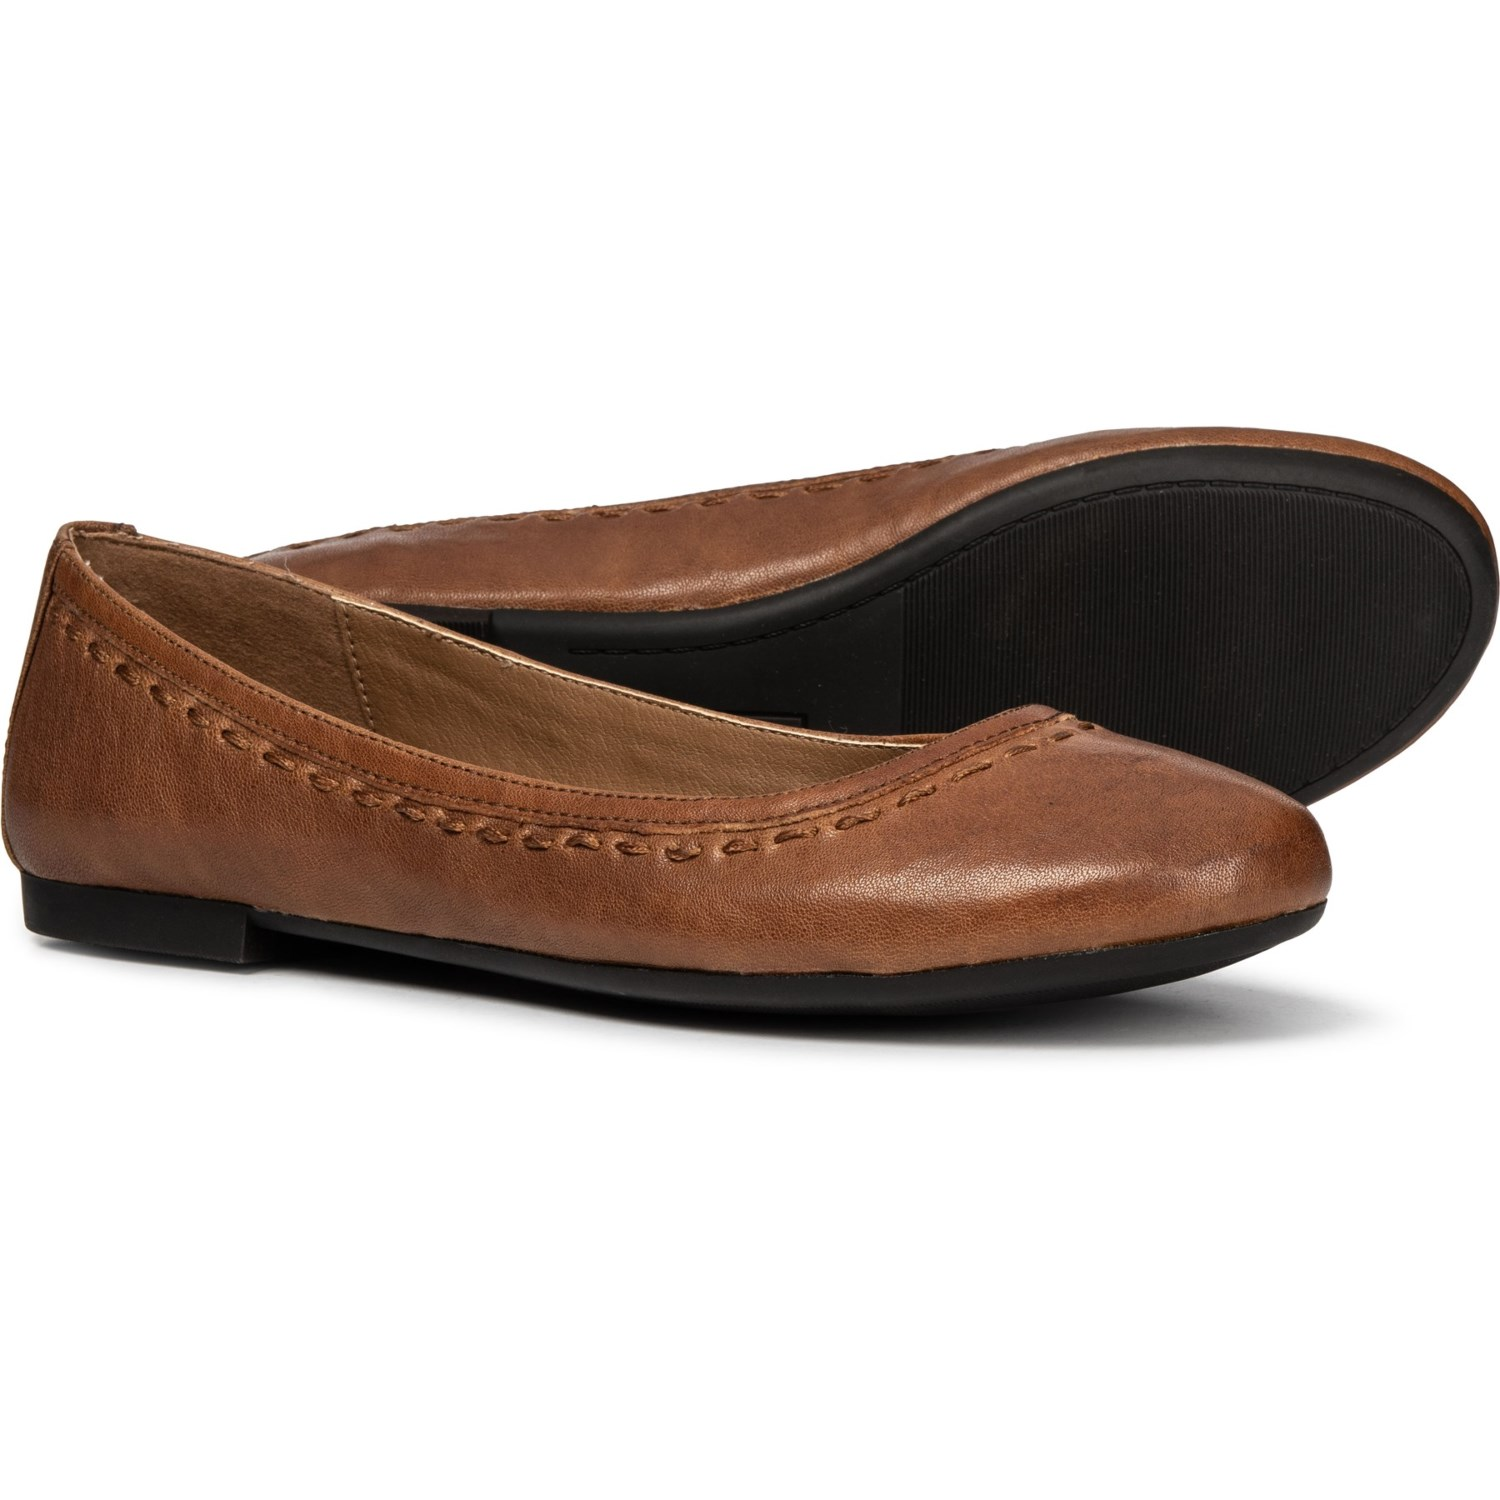 851e9de8e862c Frye Toshia Stitch Ballet Flats - Leather (For Women) in Whiskey